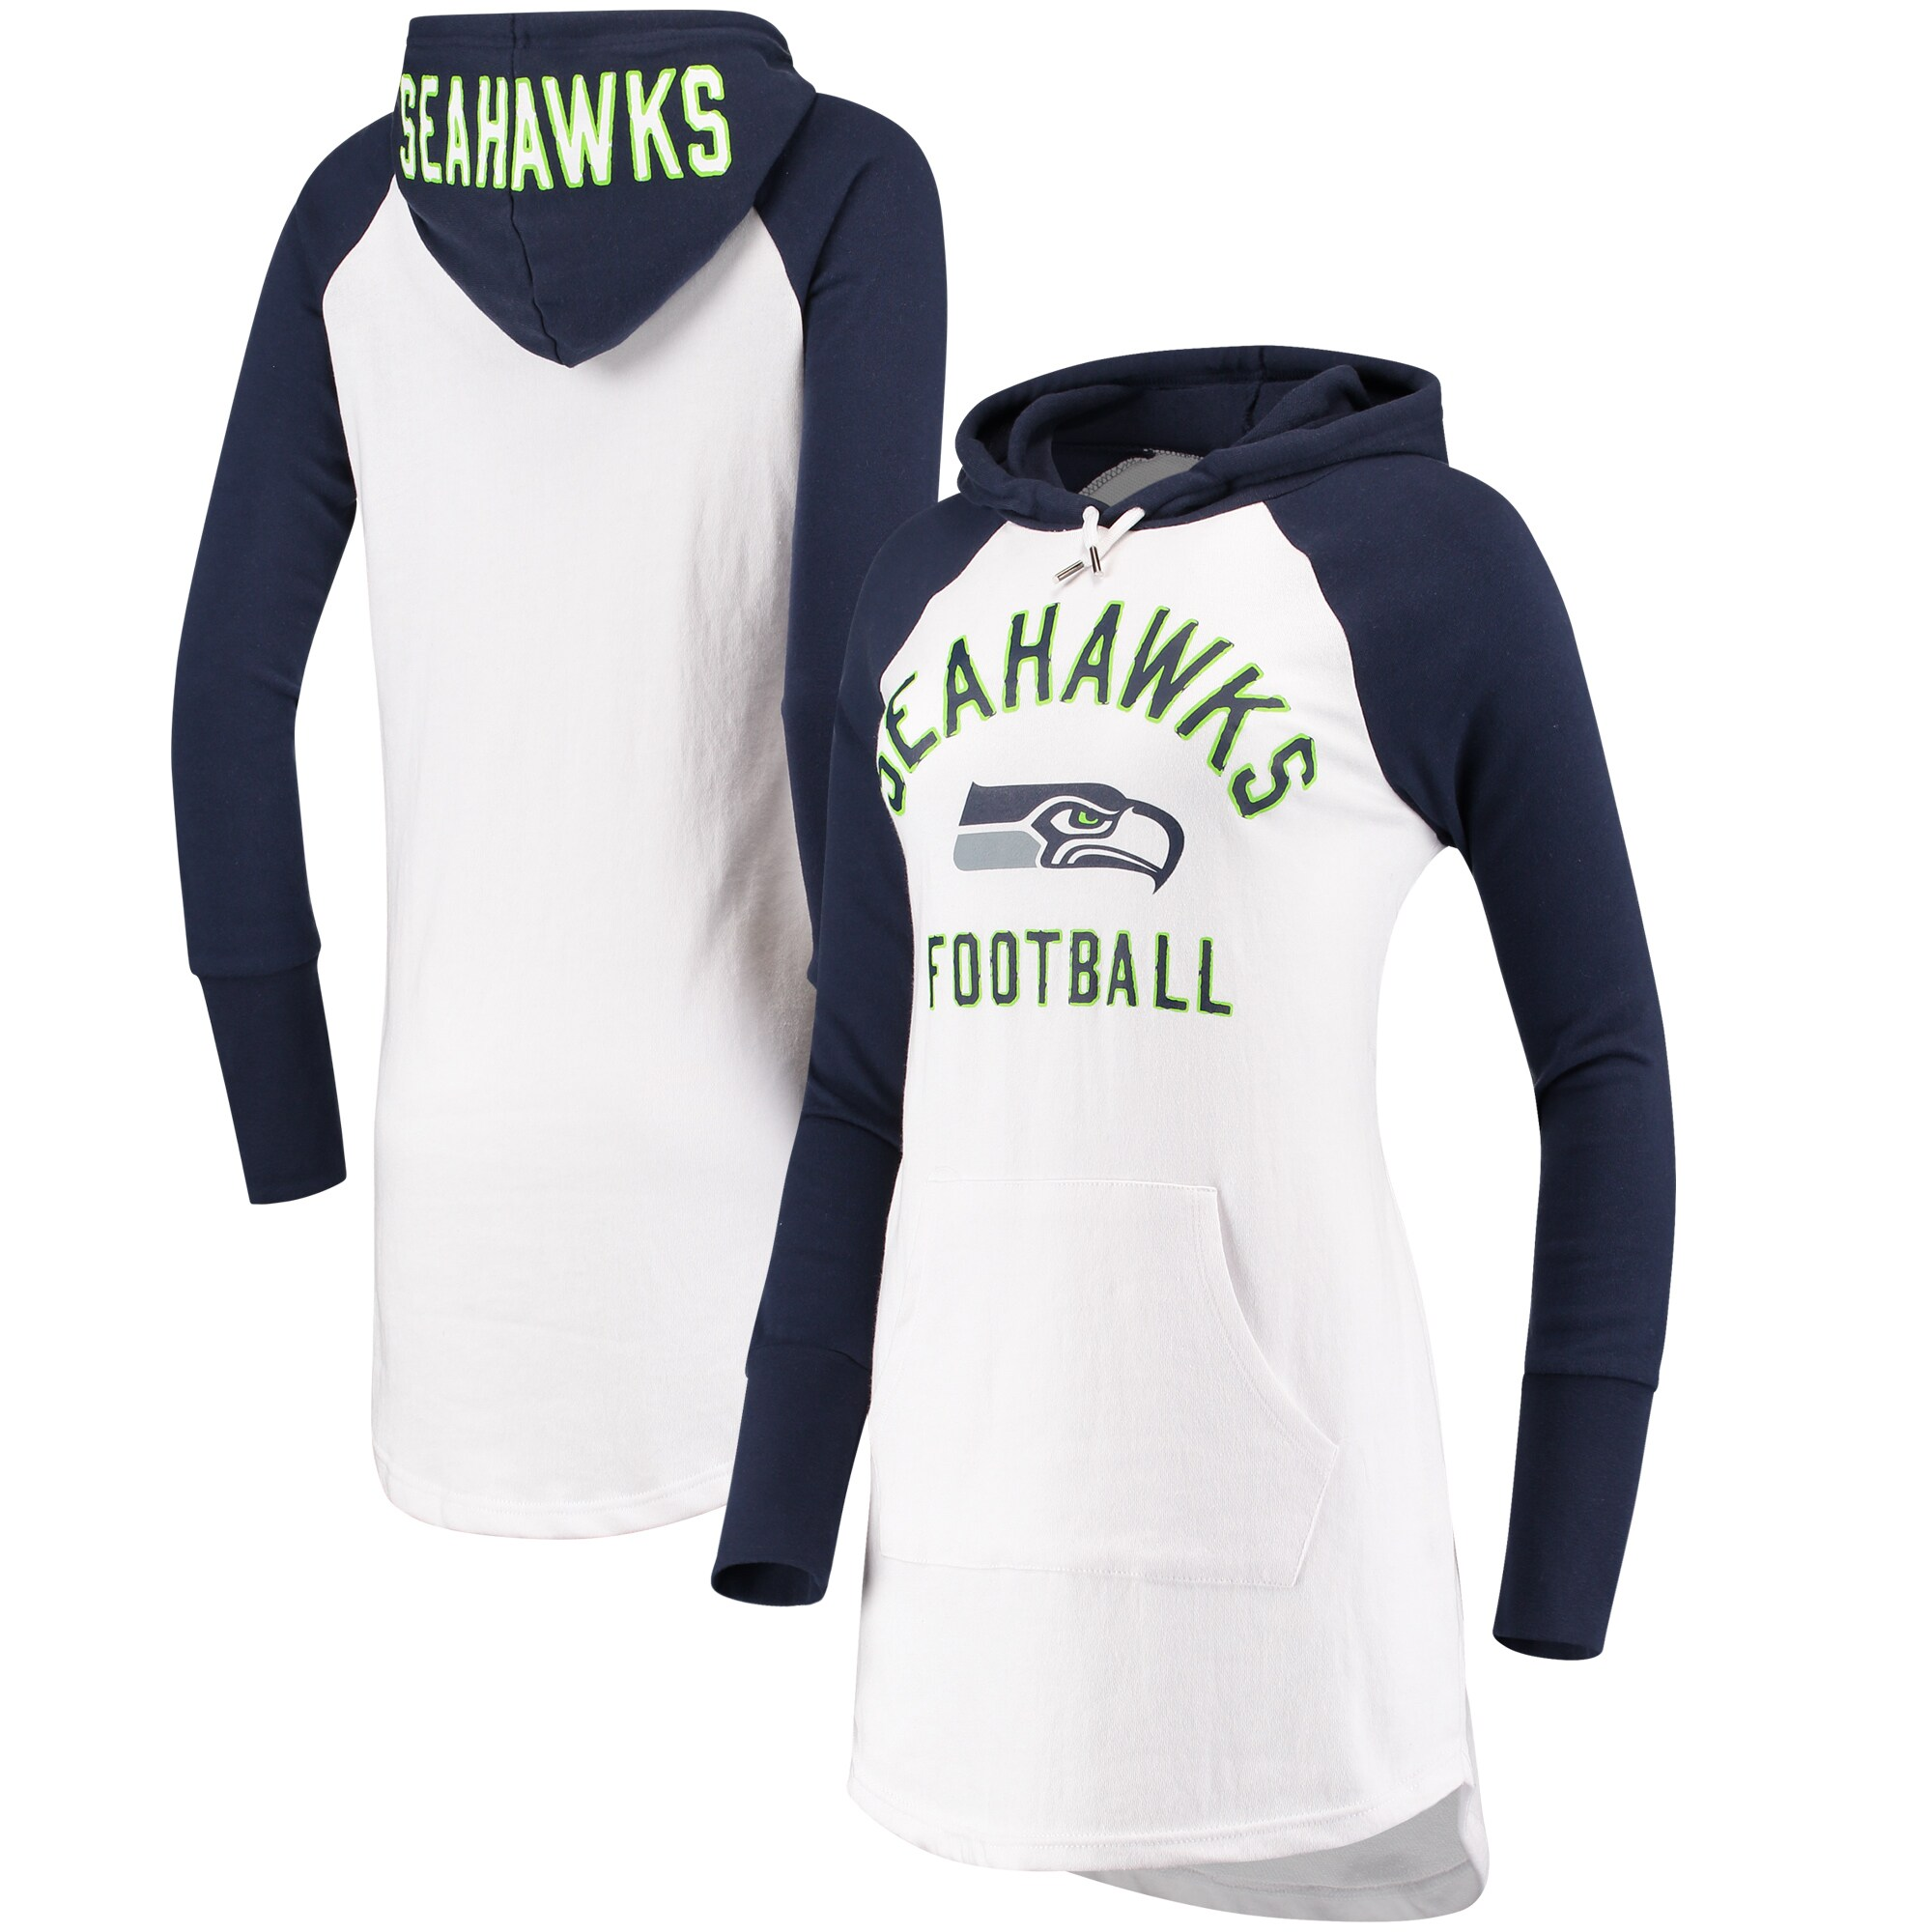 Seattle Seahawks G-III 4Her by Carl Banks Women's All Division Raglan Sleeve Pullover Hoodie - White/College Navy